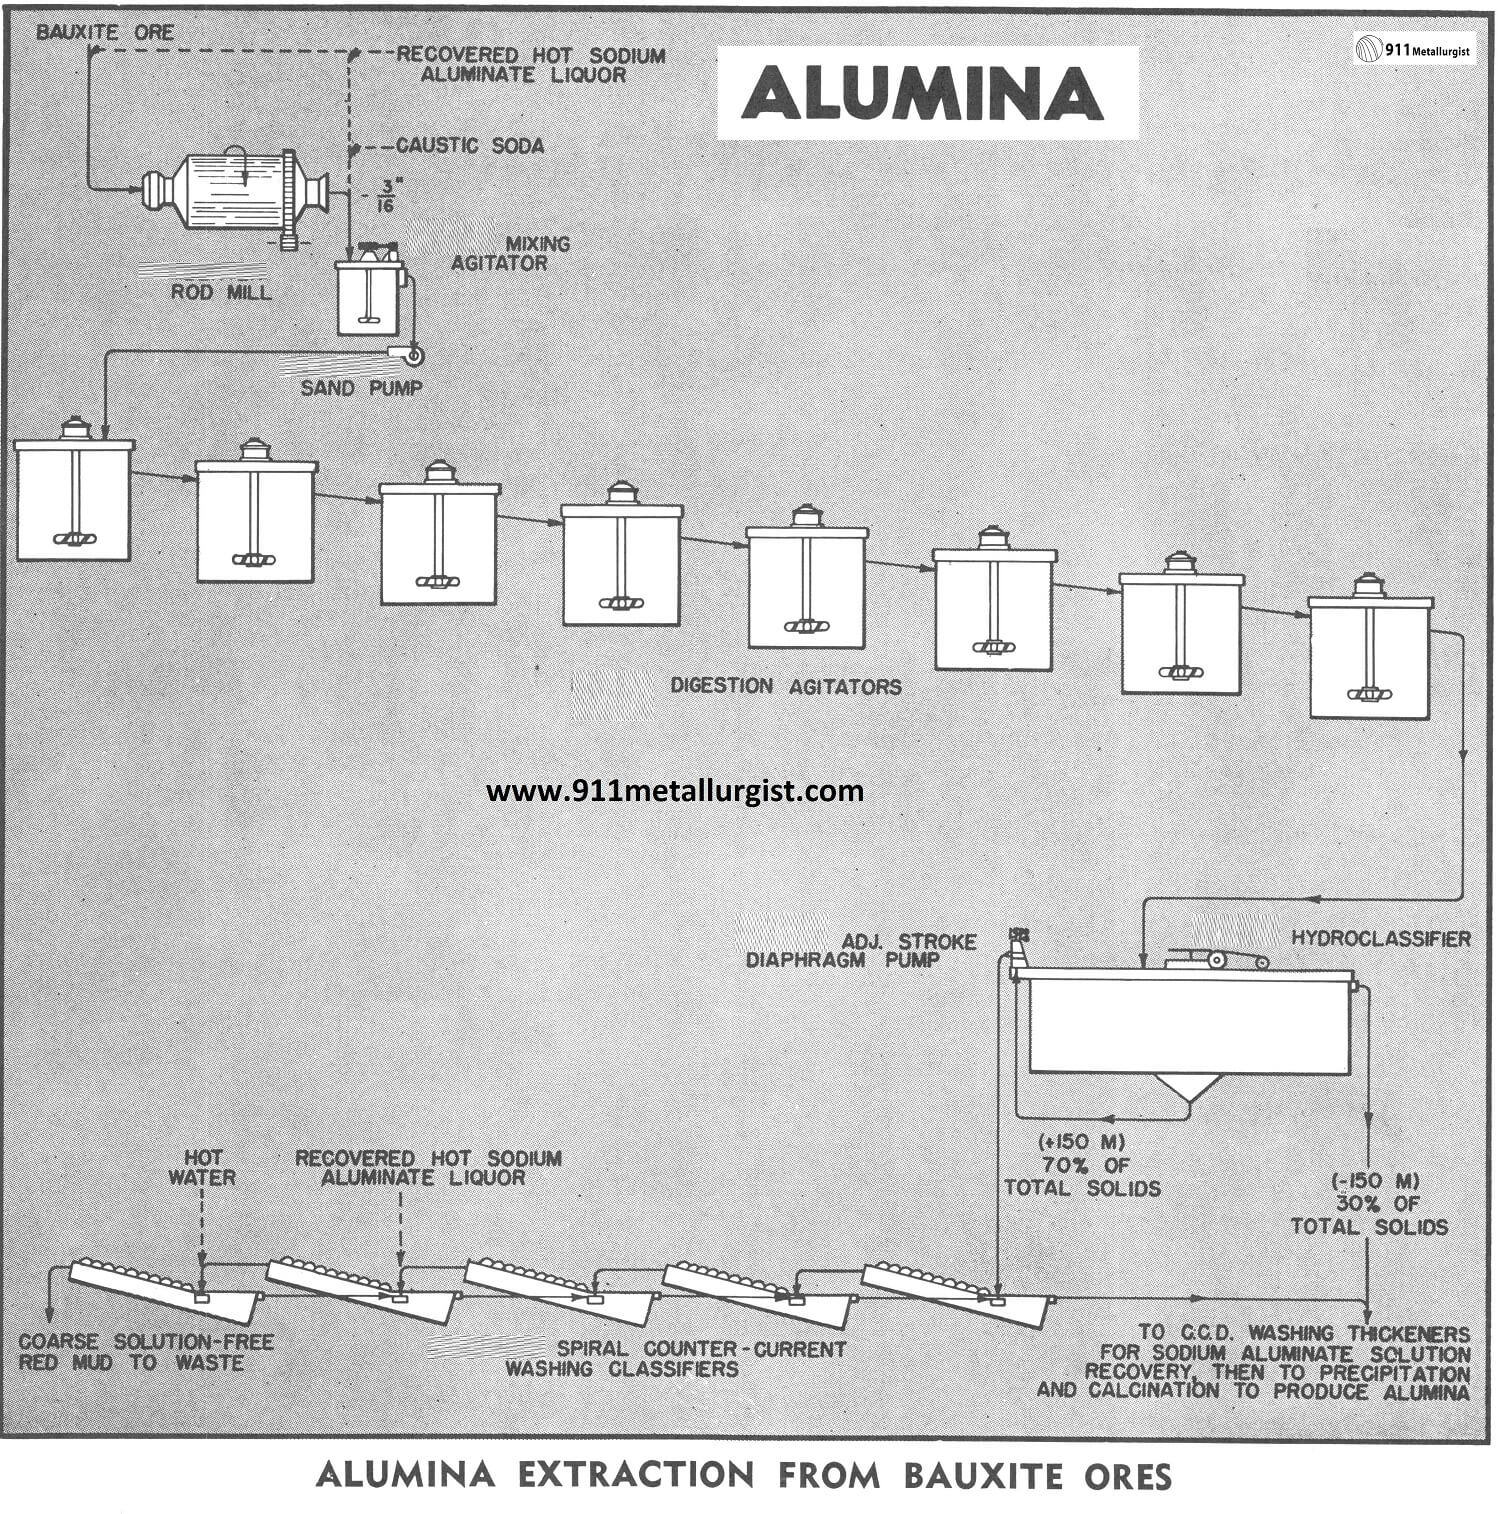 Alumina Extraction from Bauxite Ores